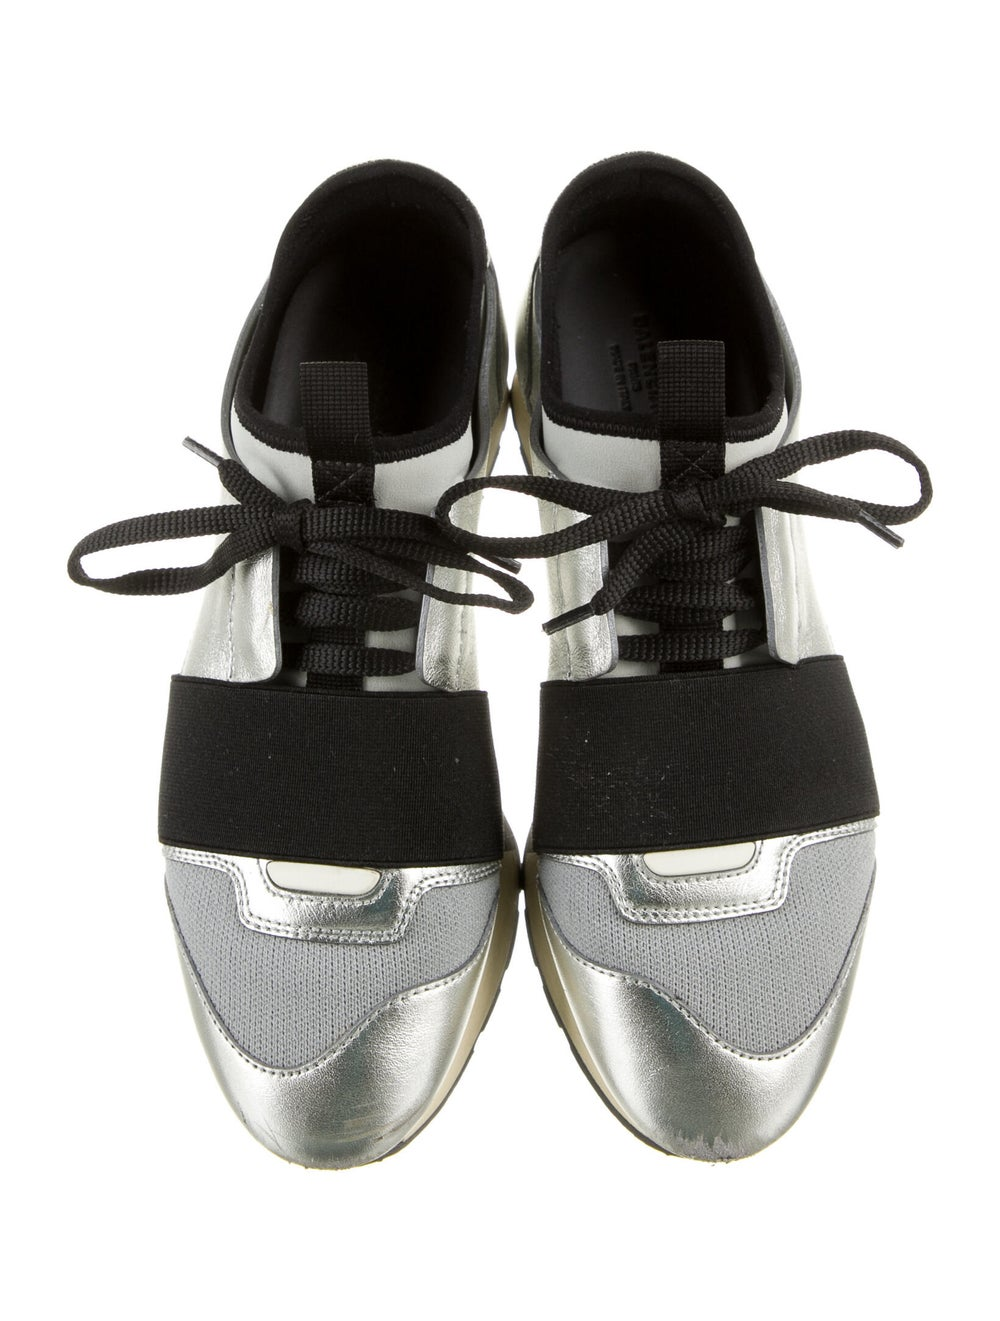 Balenciaga Leather Athletic Sneakers Silver - image 3